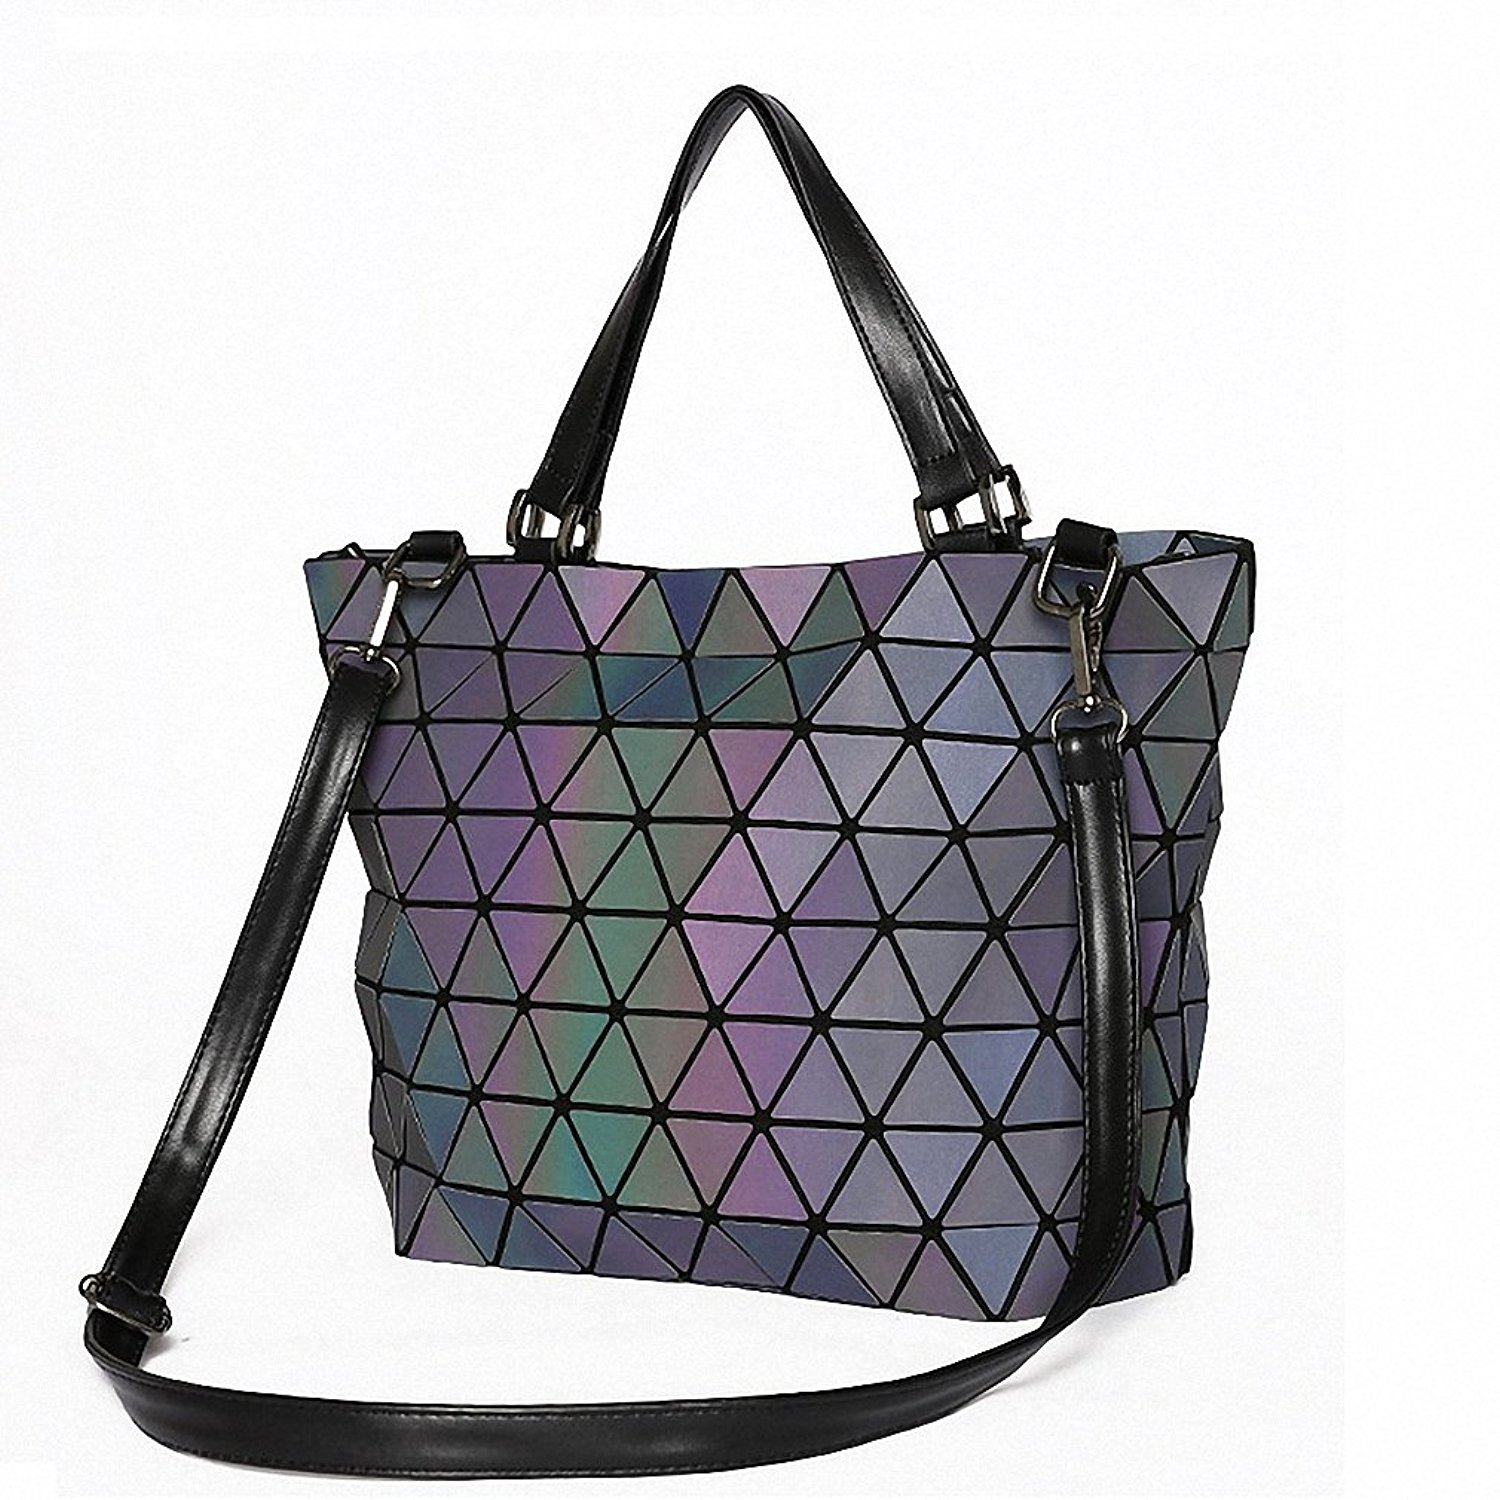 48c52ec6a9a8 Get Quotations · Matte Women BaoBao Bag Geometry Sequins Mirror Saser Plain  Folding Shoulder Bags Luminous Handbag Casual Tote